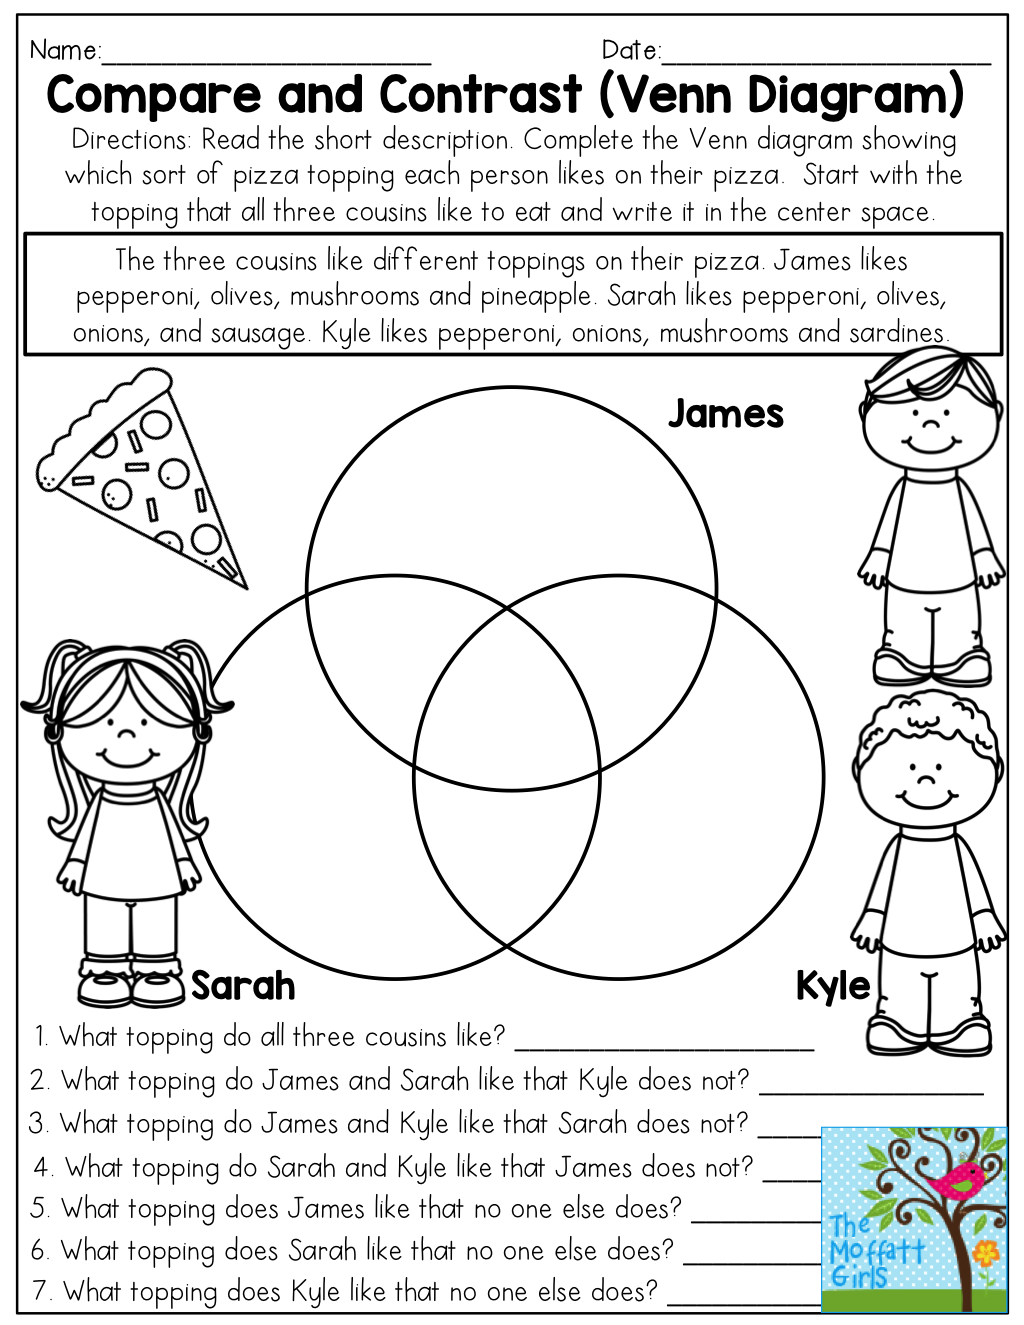 Third Grade Venn Diagrams Worksheet